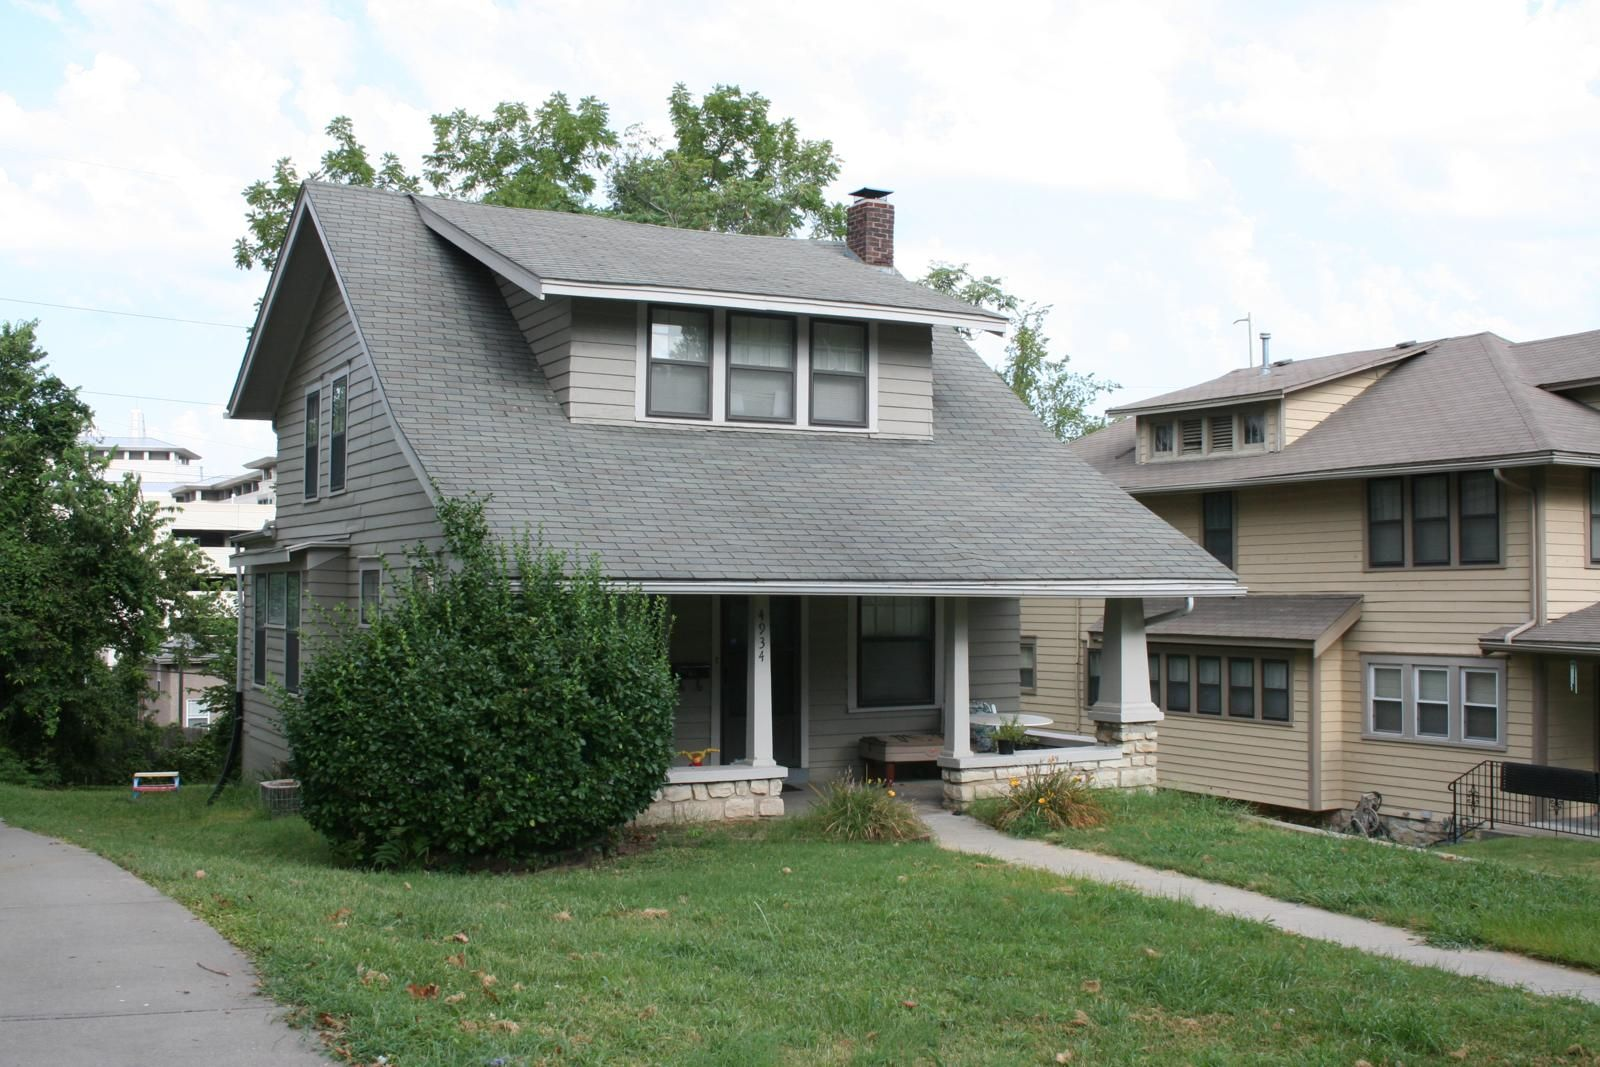 Shed dormer project bungalow pinterest for Shed with dormer